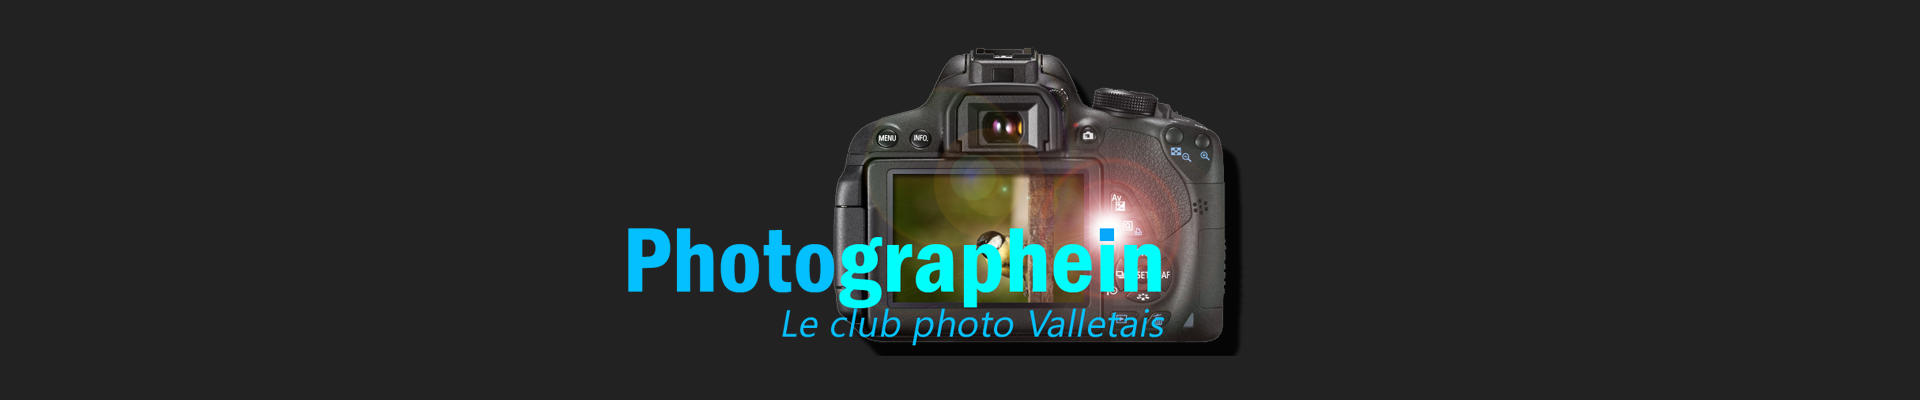 Photographein le club photo en ligne Bandea28